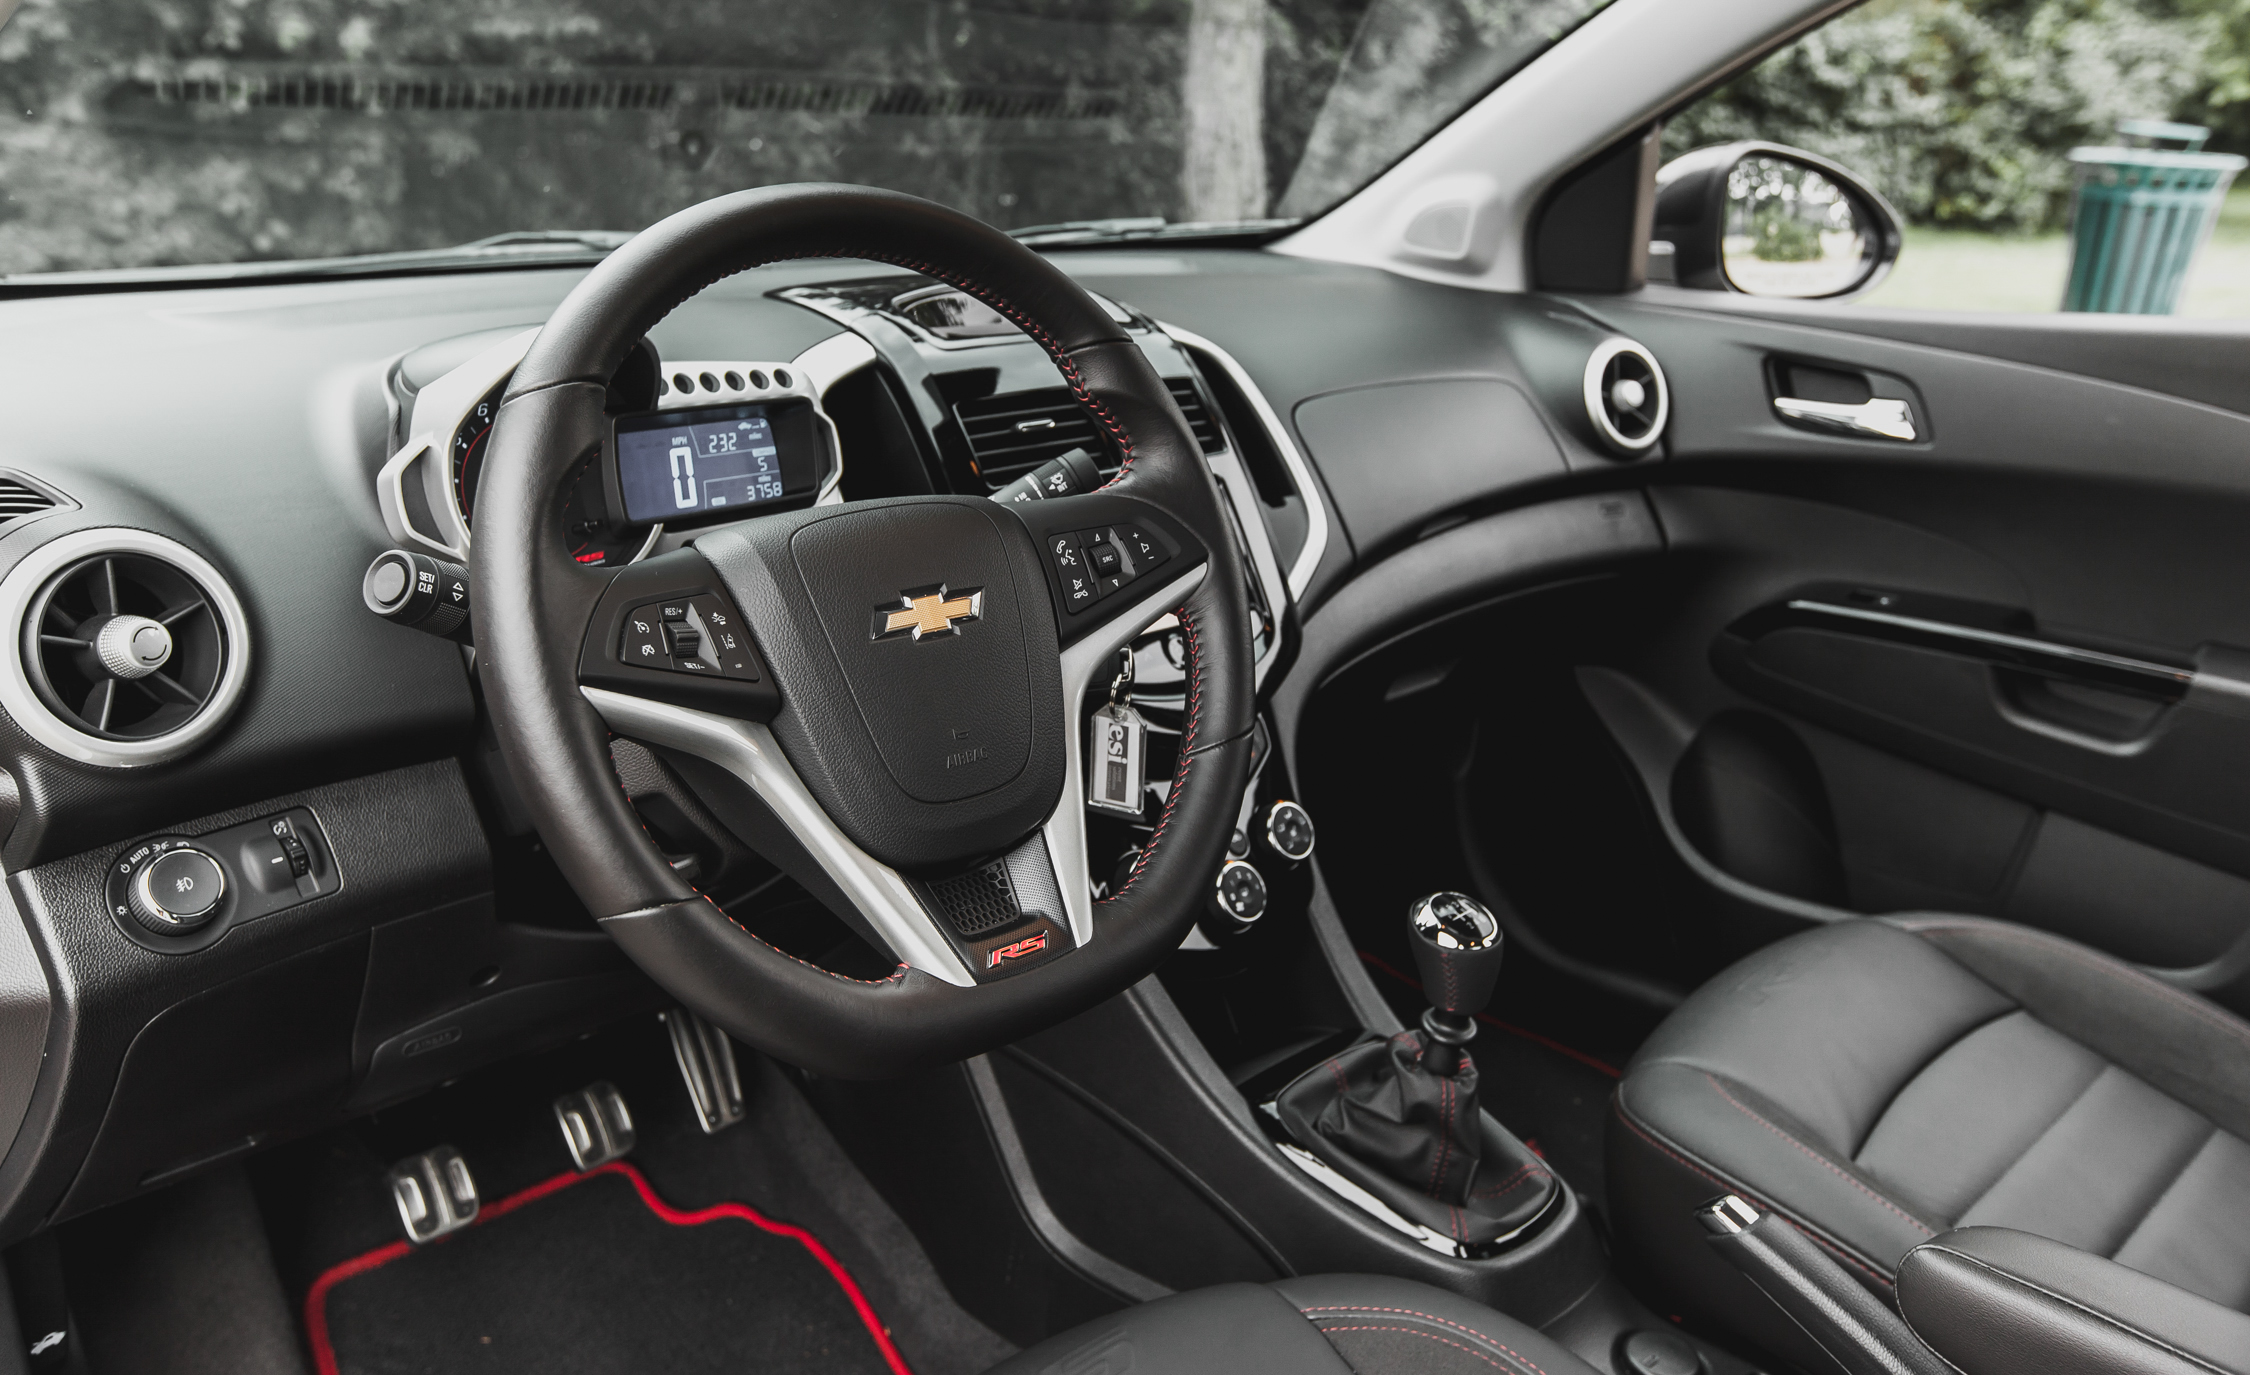 2014 Chevrolet Sonic RS Sedan Interior (Photo 18 of 27)